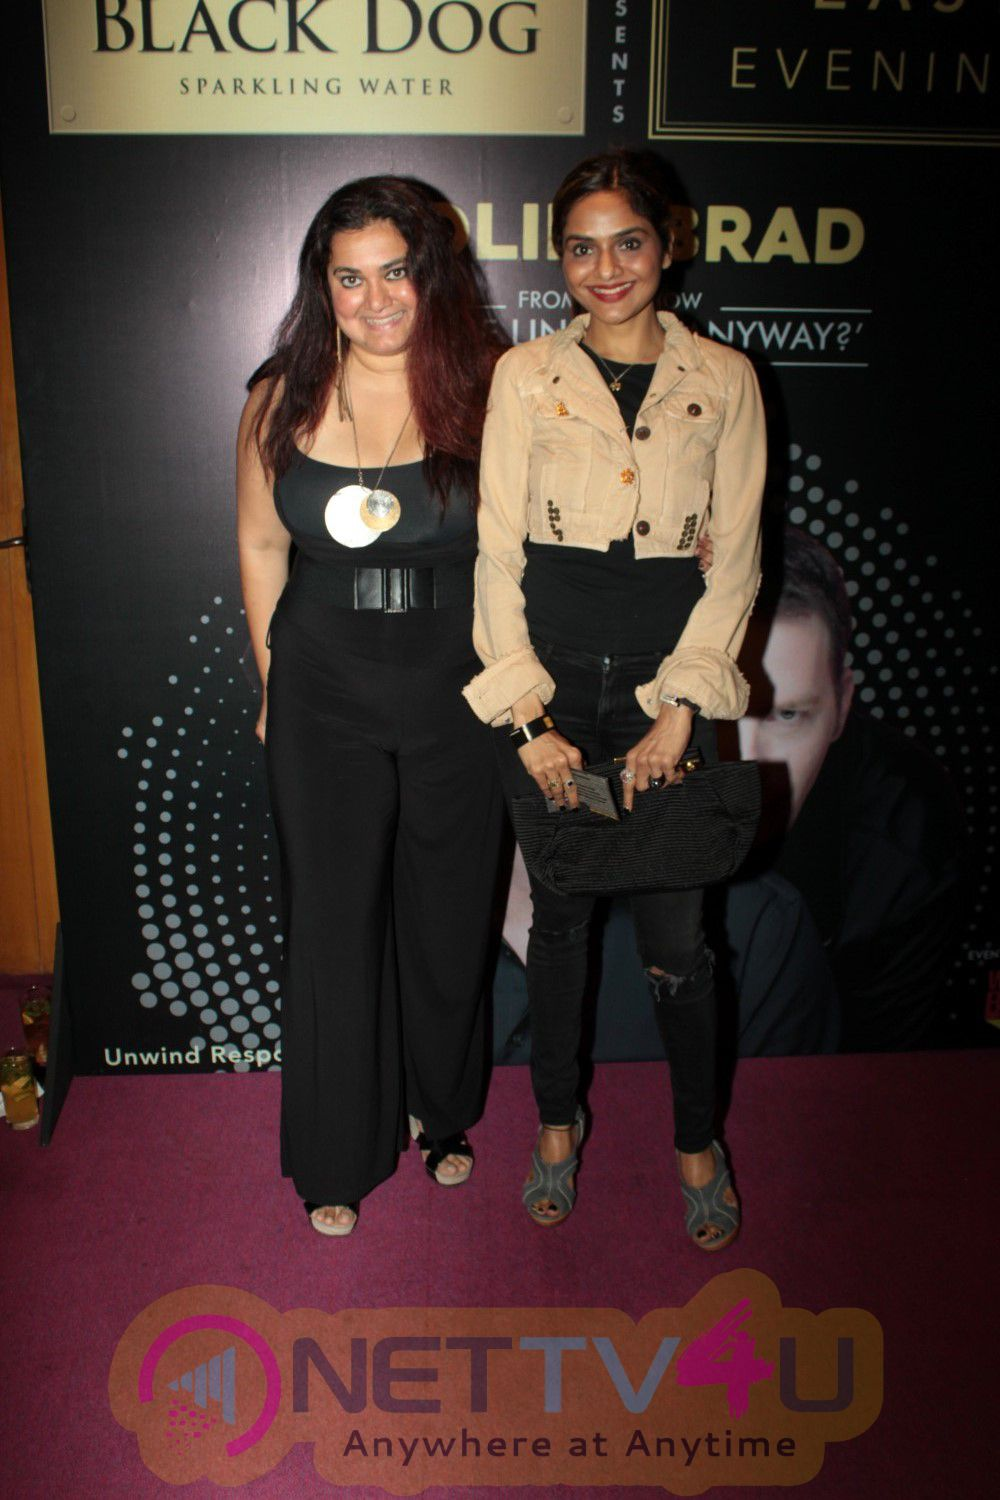 Soha Ali Khan At The Red Carpet Of Black Dog Easy Evenings Colin & Brad Two Man Show Photos Hindi Gallery